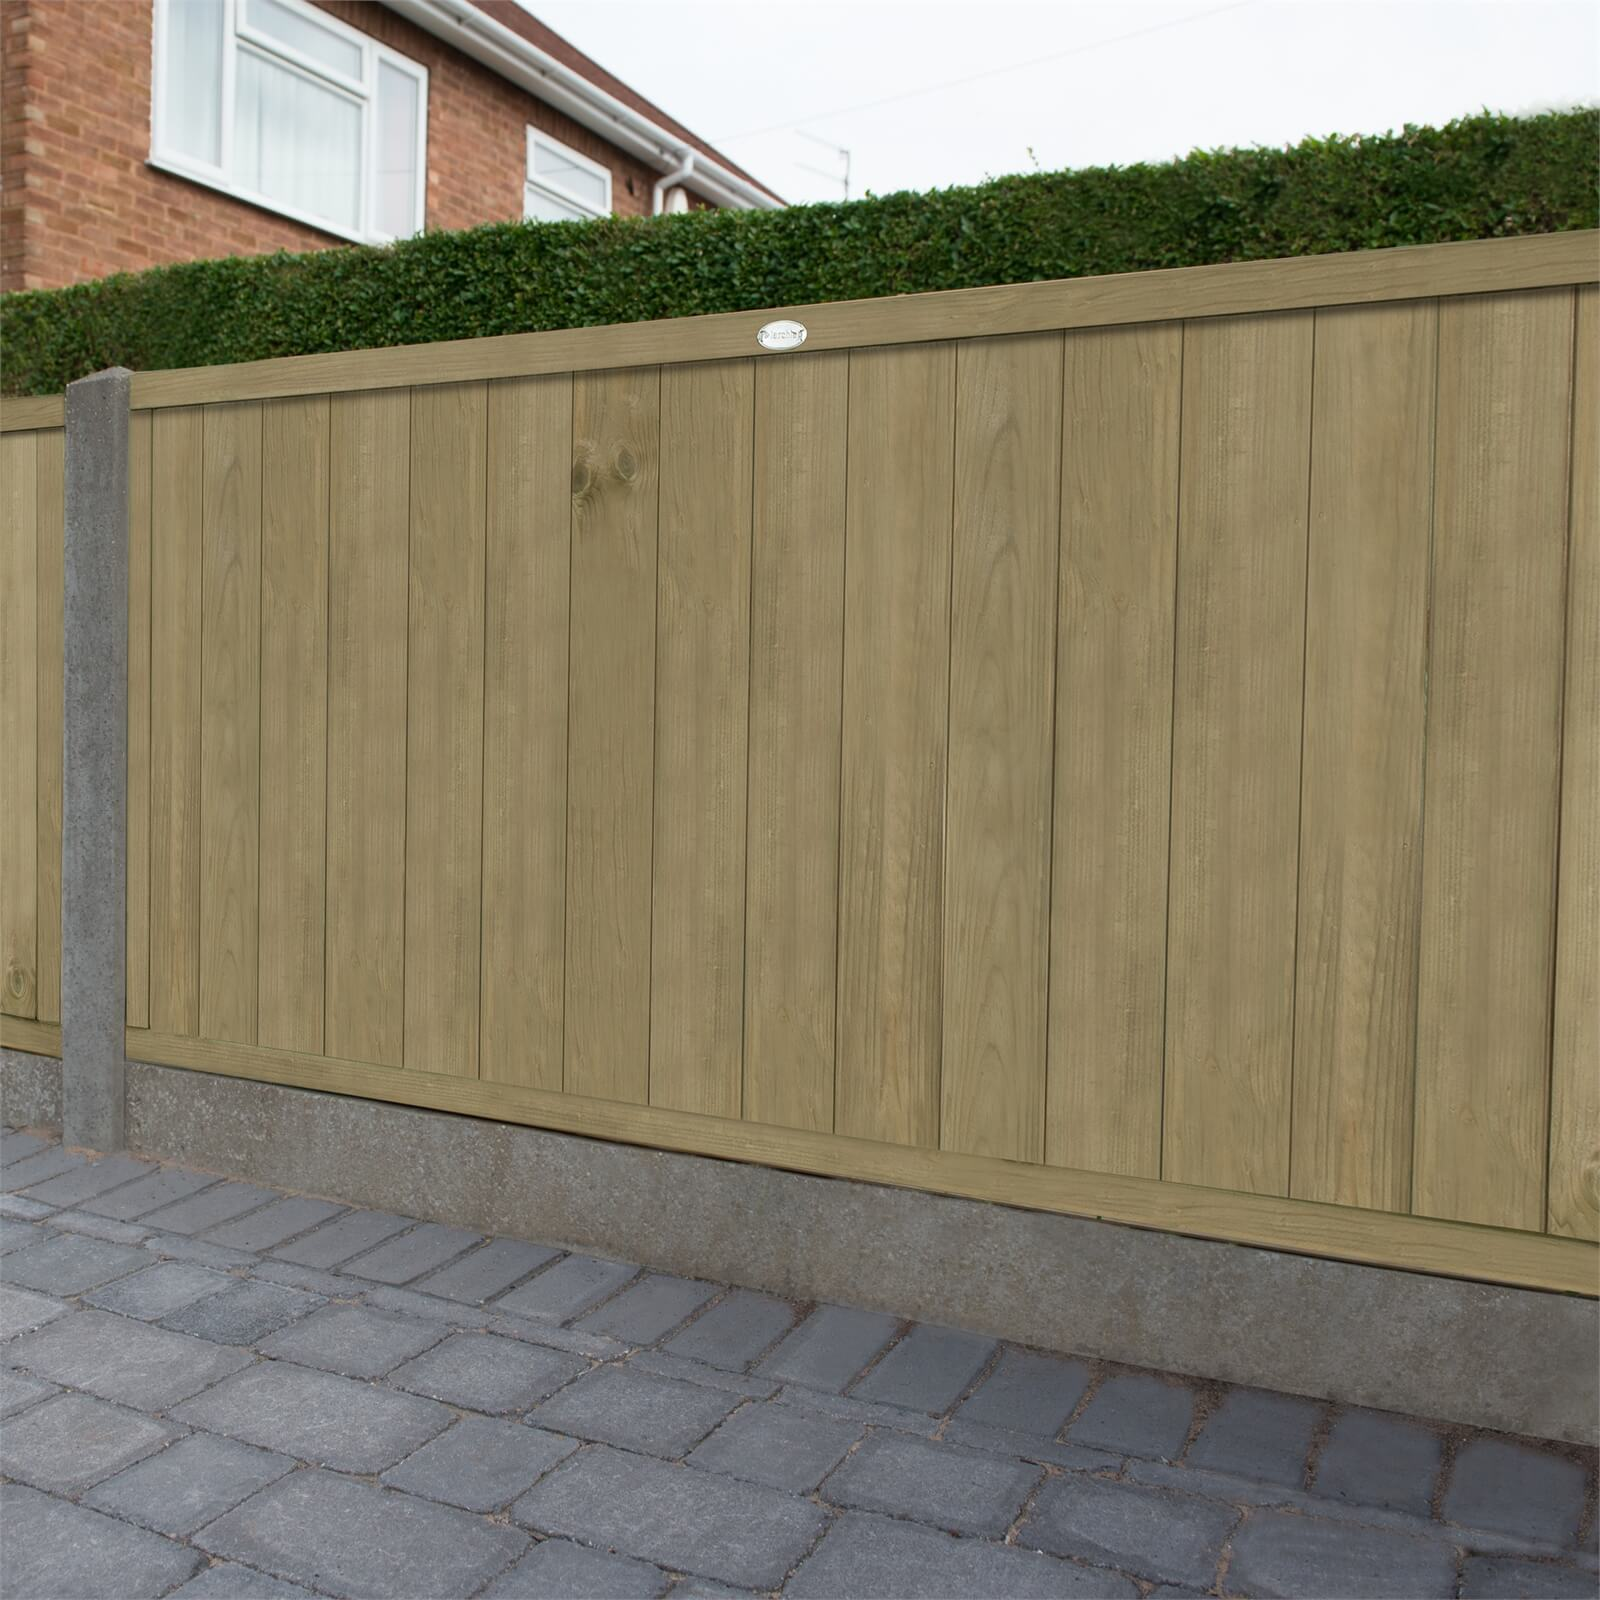 Forest Vertical Tongue & Groove Fence Panel - 4ft - Pack of 5